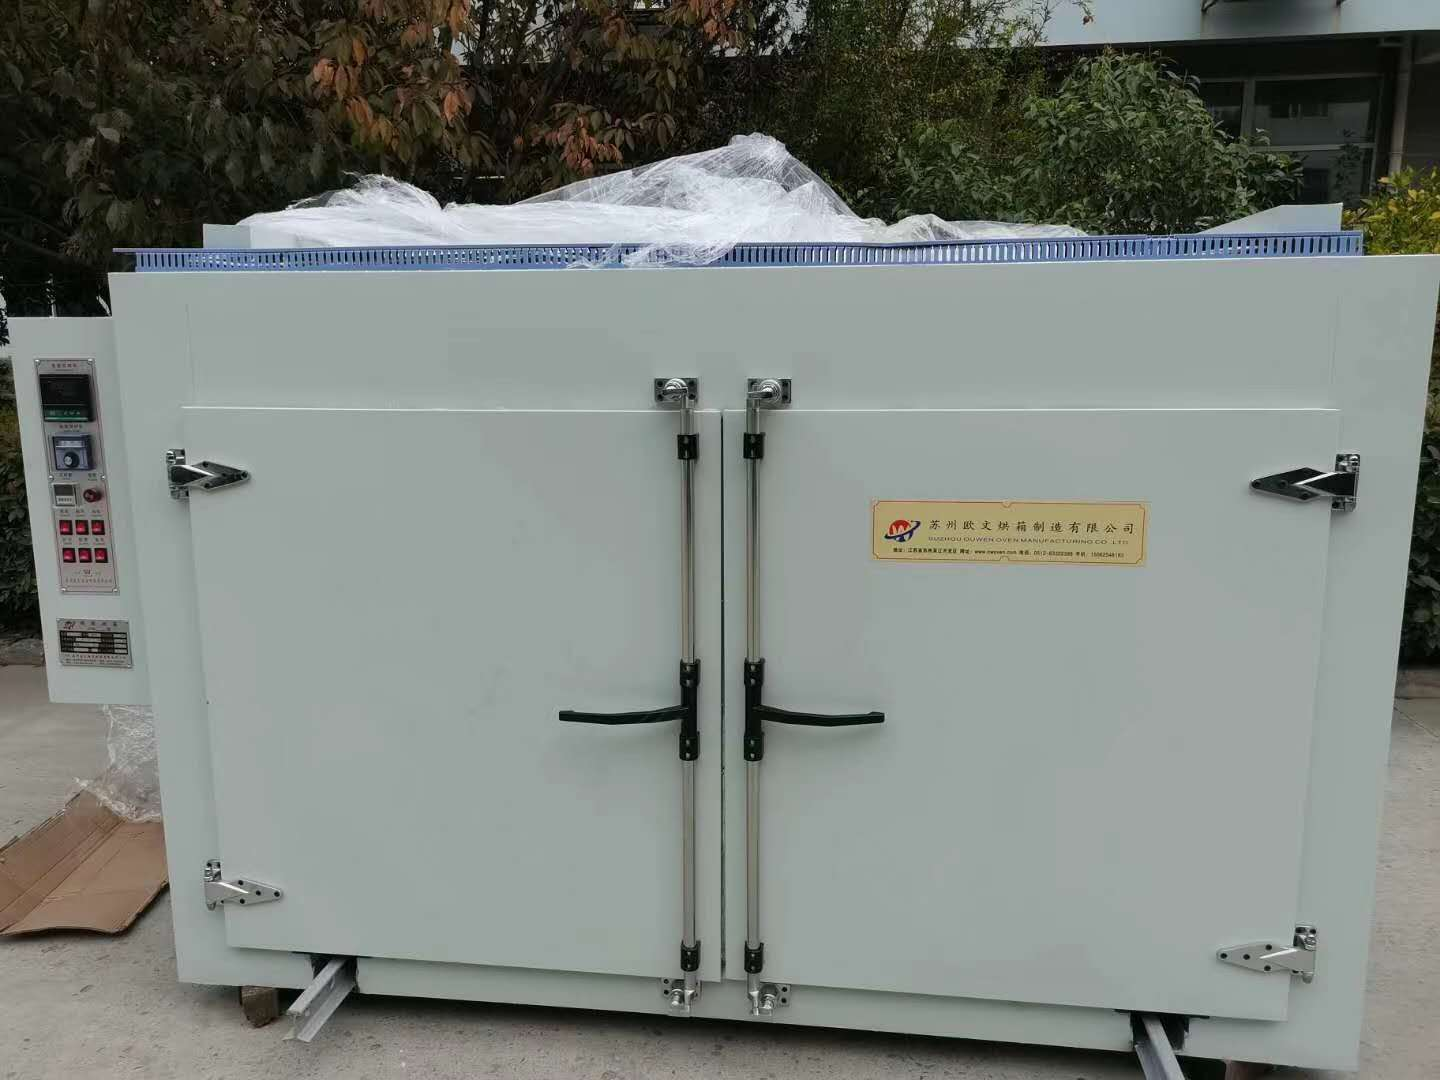 Zhimin purchased large size oven for big capacity load cells